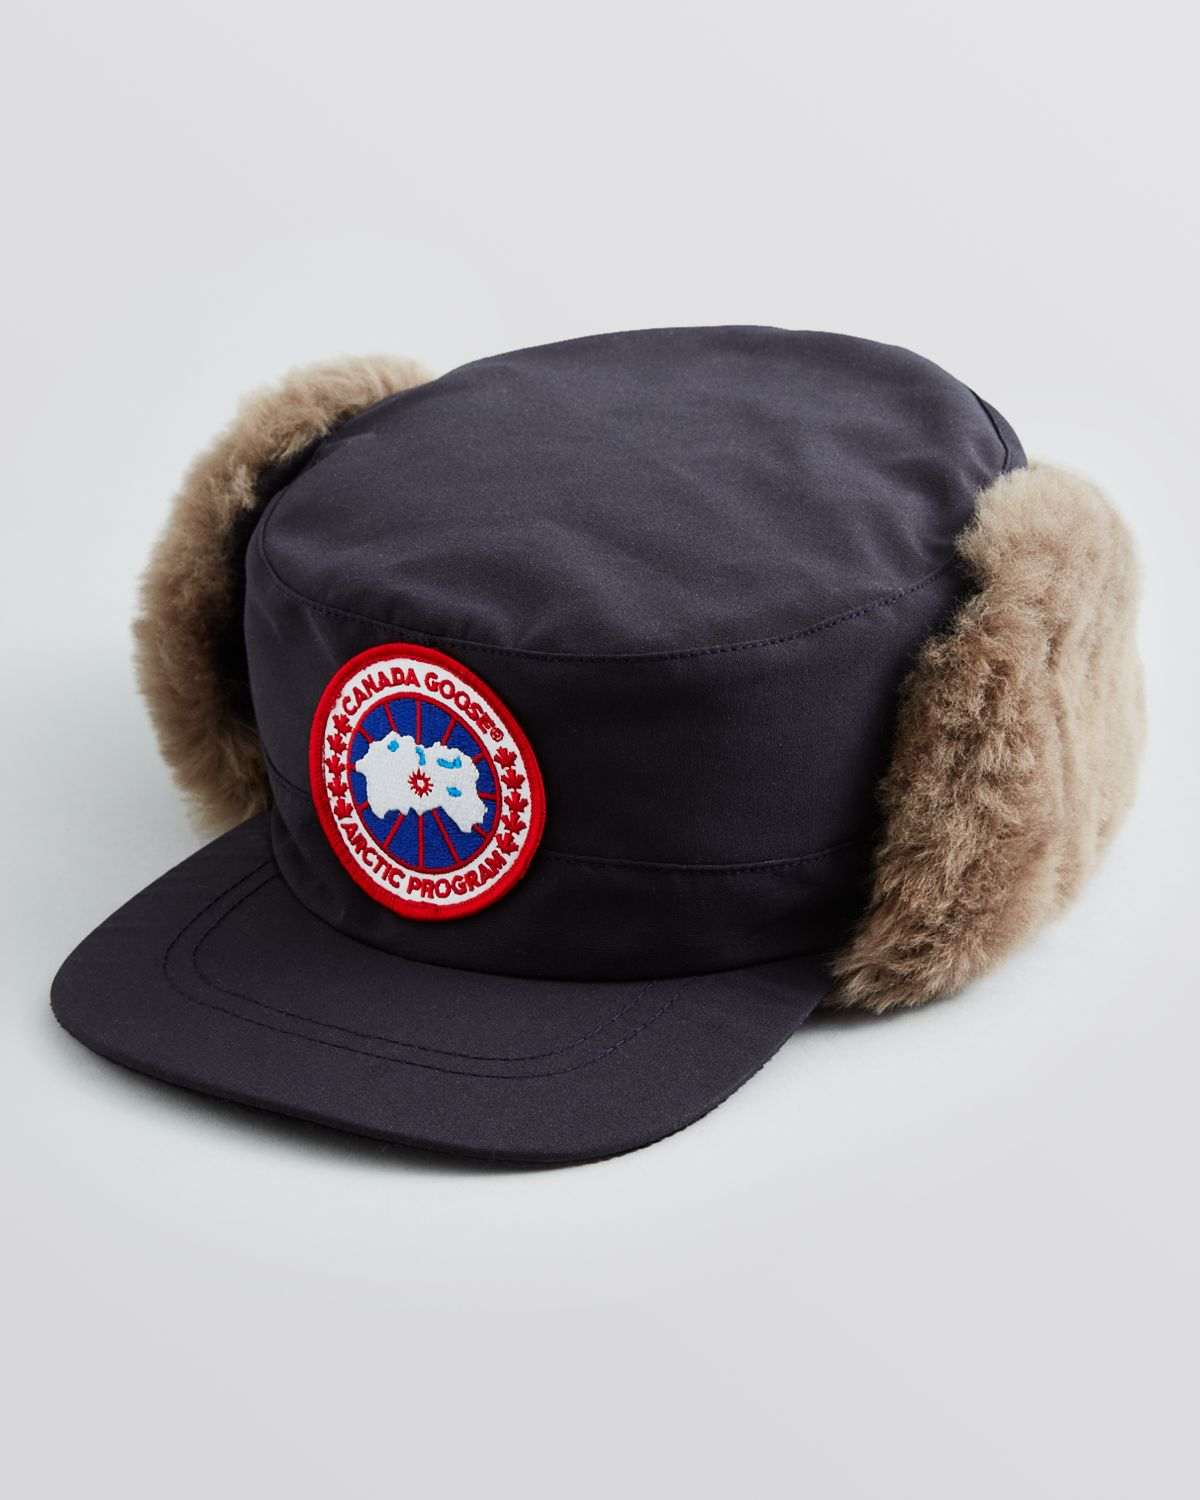 Lyst - Canada Goose Classique Shearling Hat in Blue for Men 02beef5559b